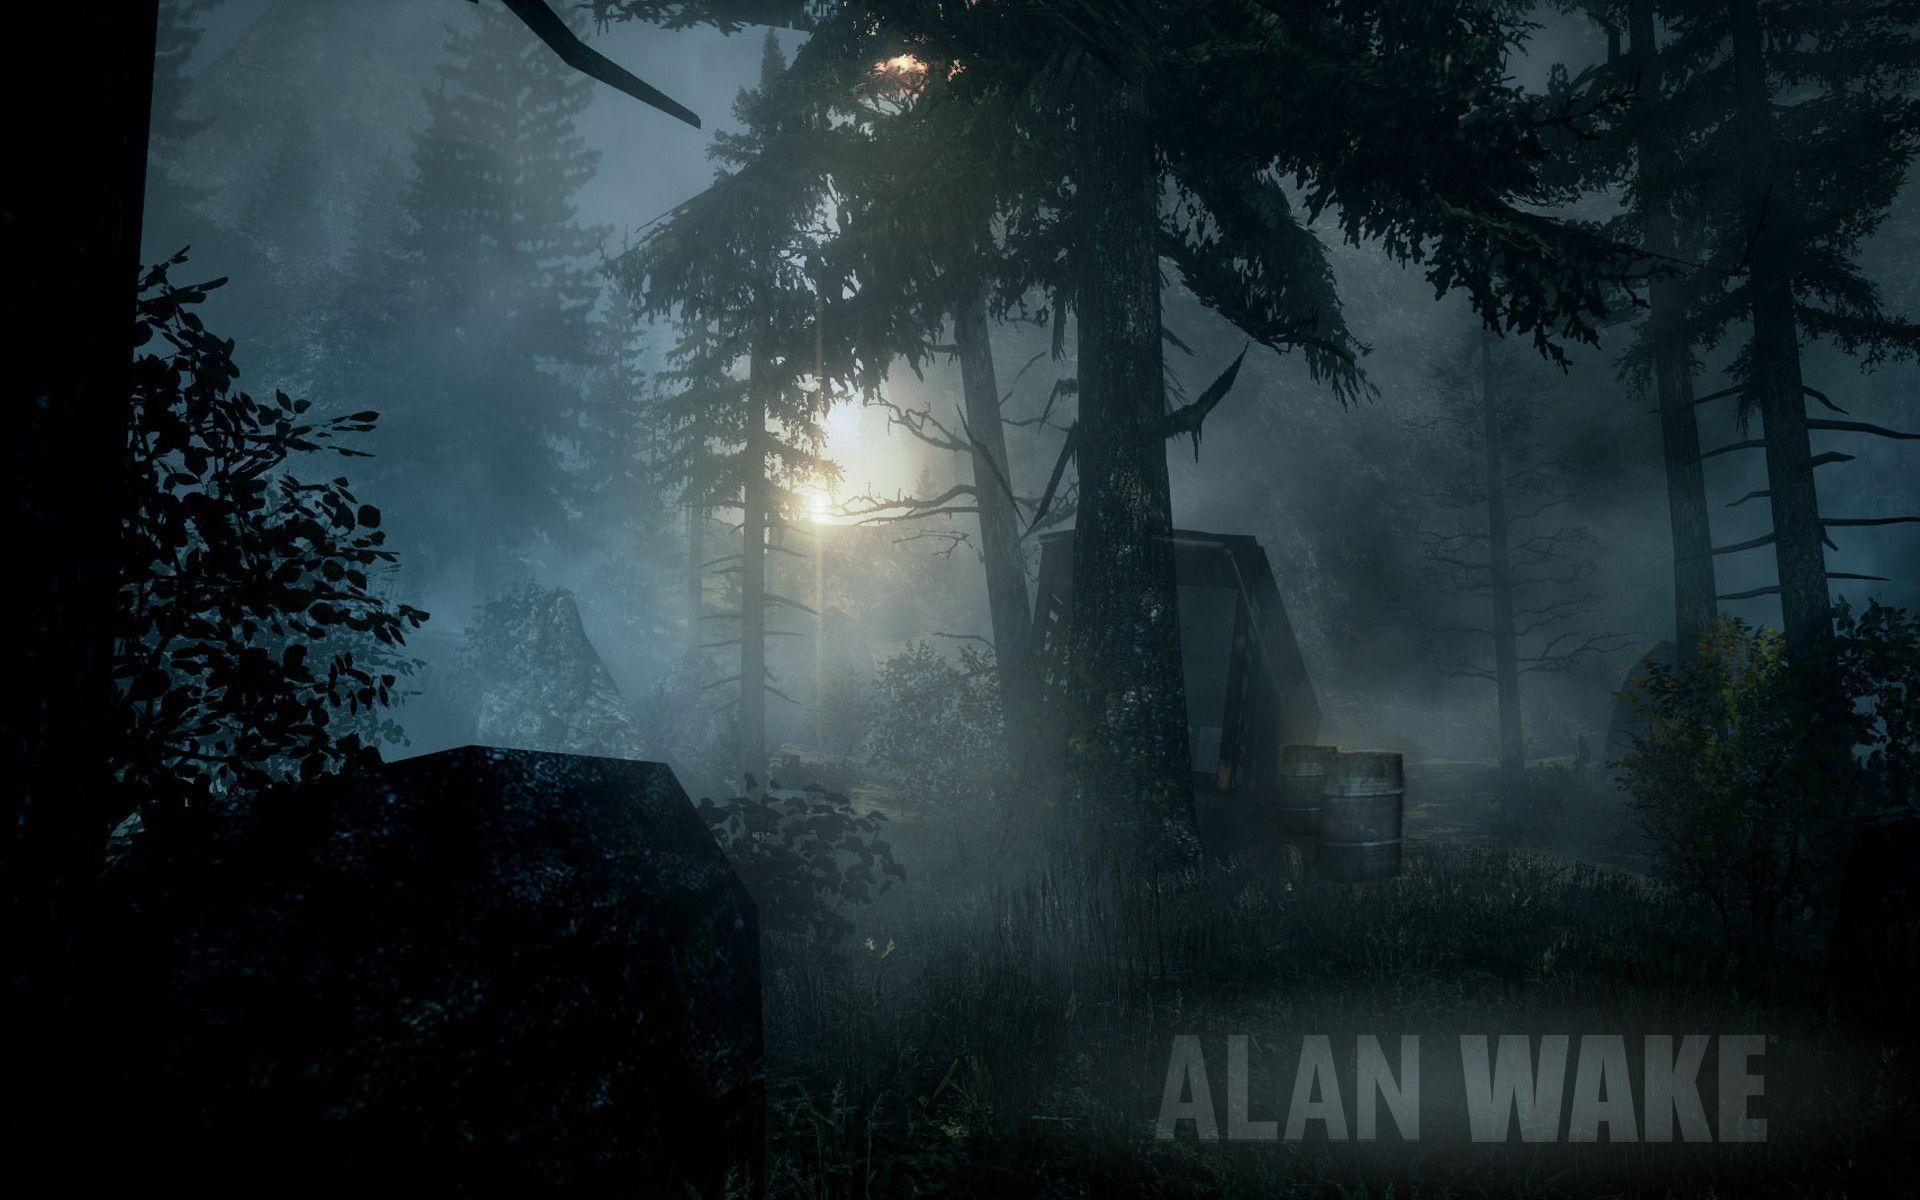 Alan Wake Wallpapers 1920x1200